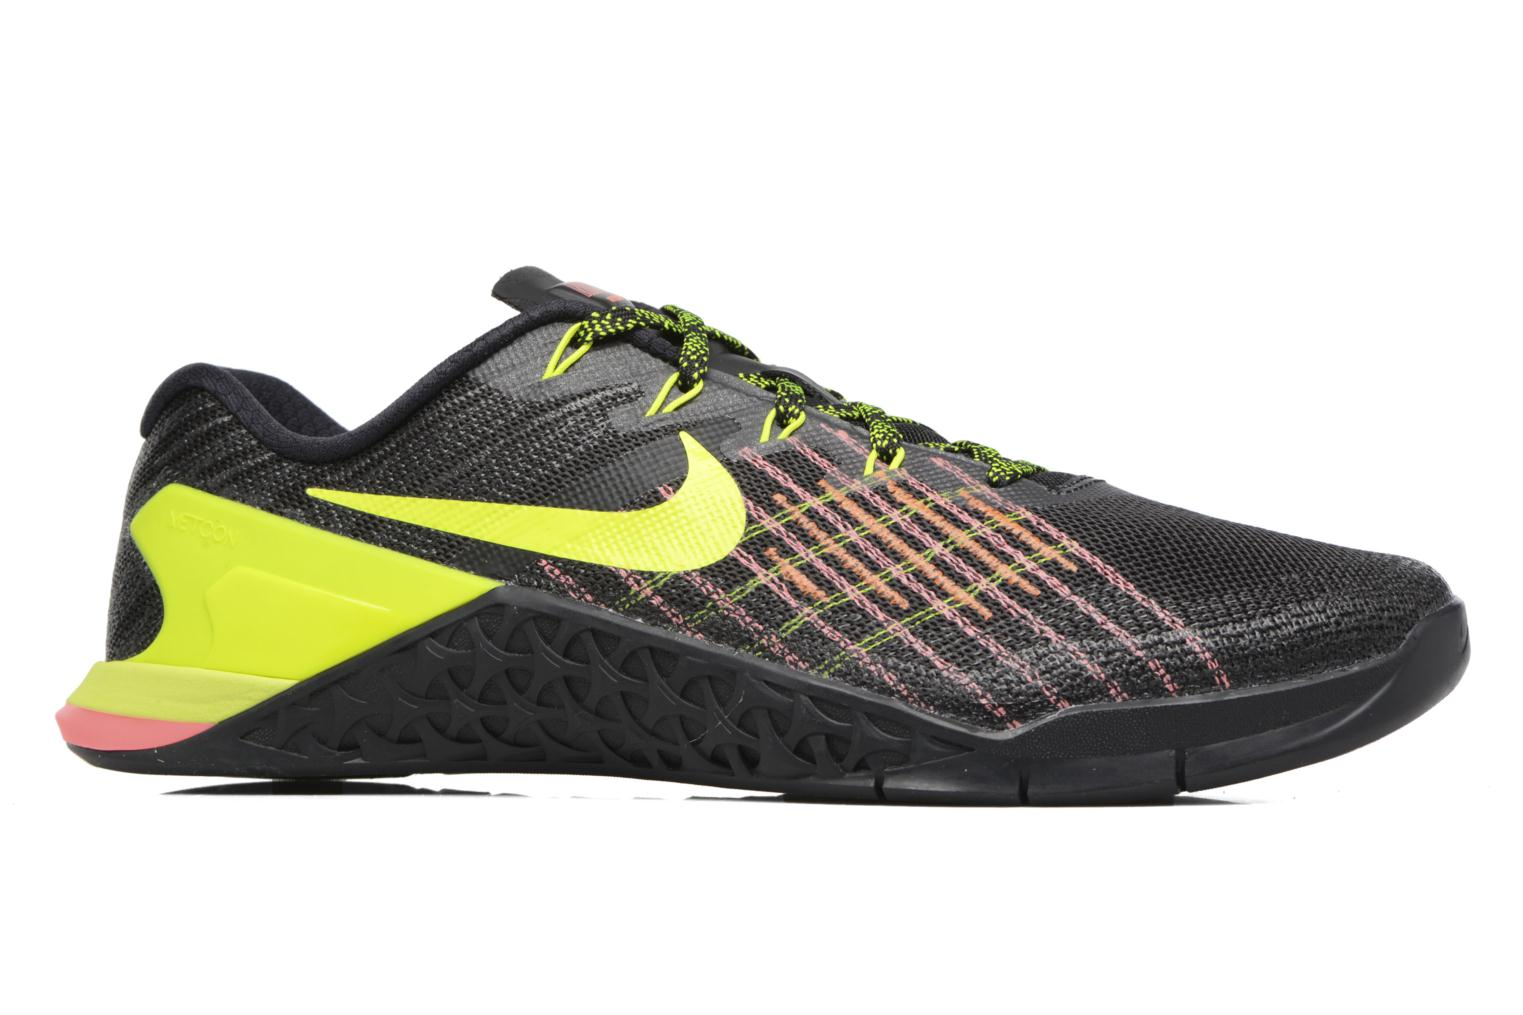 Nike Metcon 3 Black/Volt-Hyper Crimson-Hot Punch